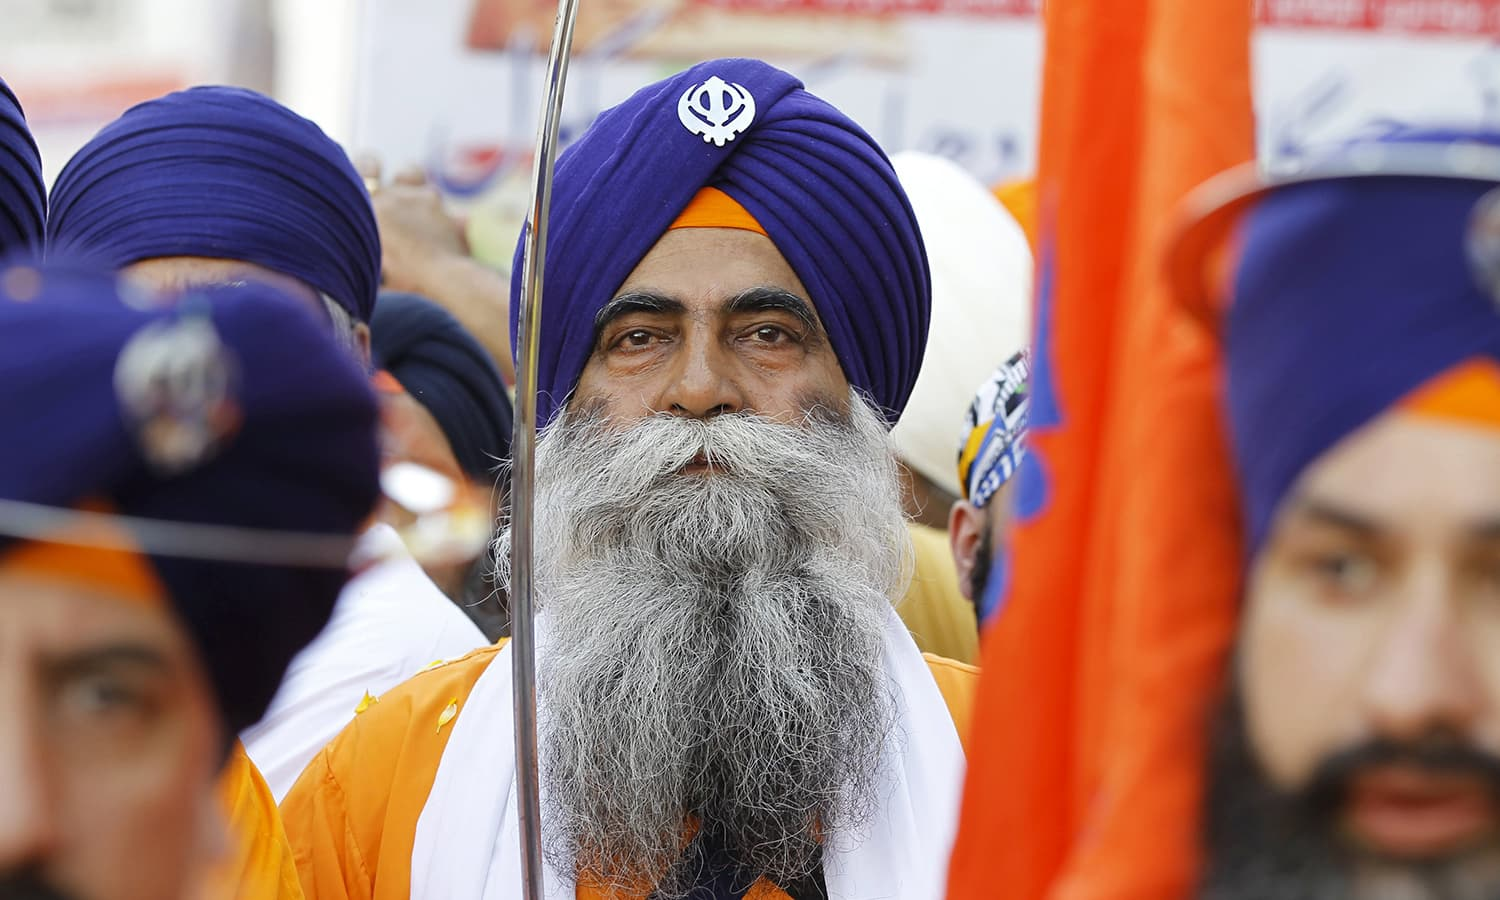 Sikh devotees participate in the Baisakhi festival at Panja Sahib shrine in Hassan Abdal. — Reuters